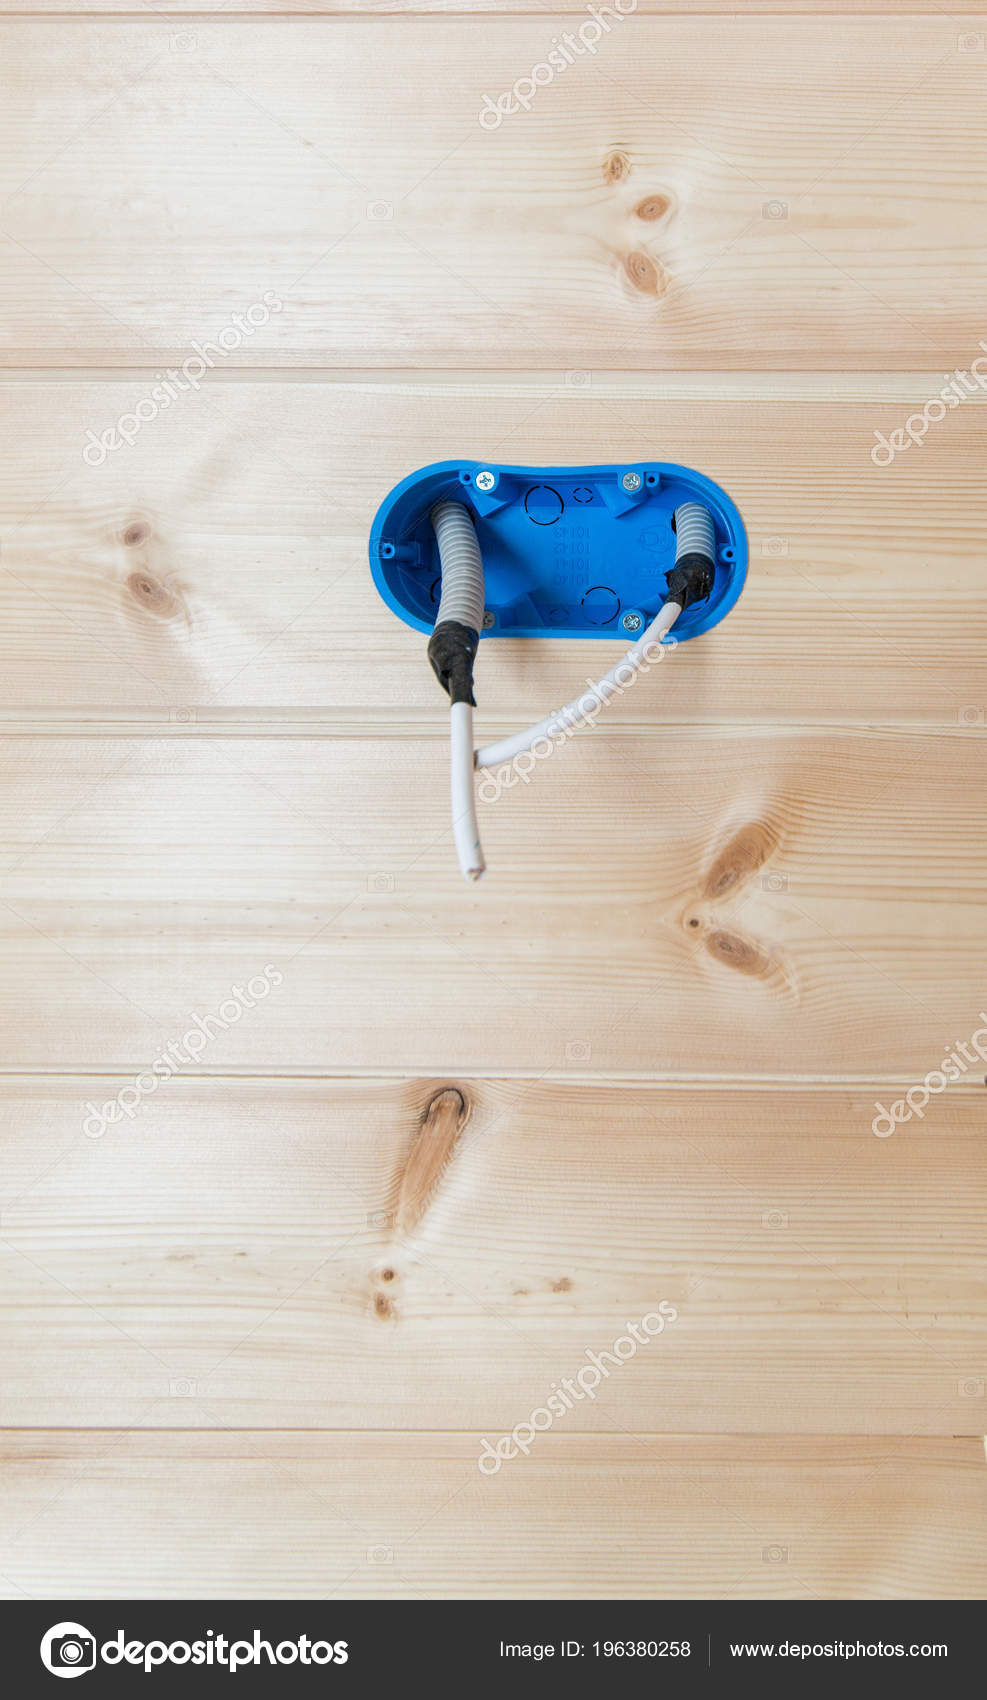 Blue Hood Wall Outlet Switch Protruding Insulated Wire Electric Wiring An From A In The For Or With Wooden House Photo By Endewer1mailru